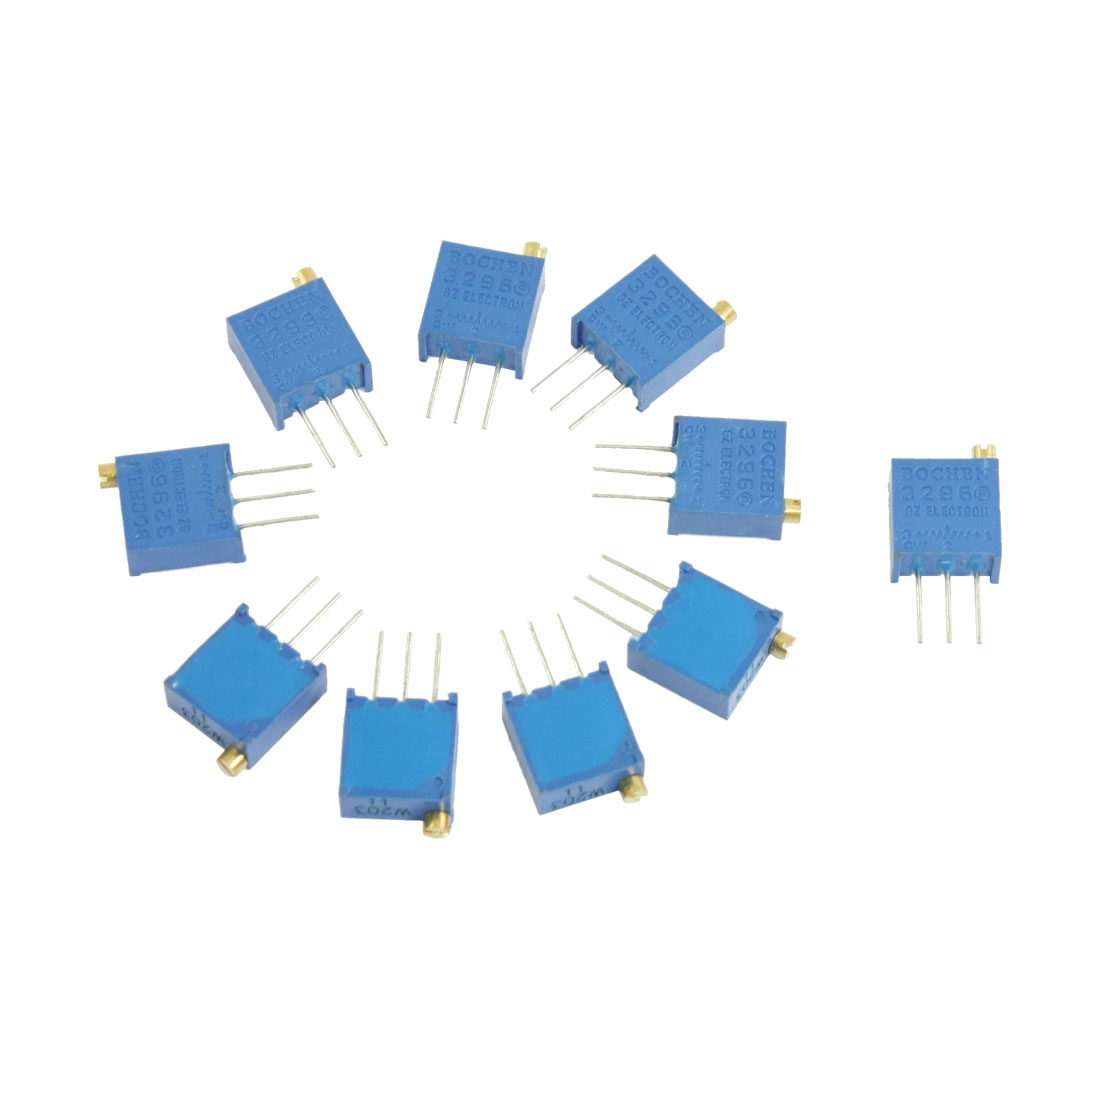 10 Pcs Variable Resistor Trimmer Potentiometer 20K Ohm 3296W